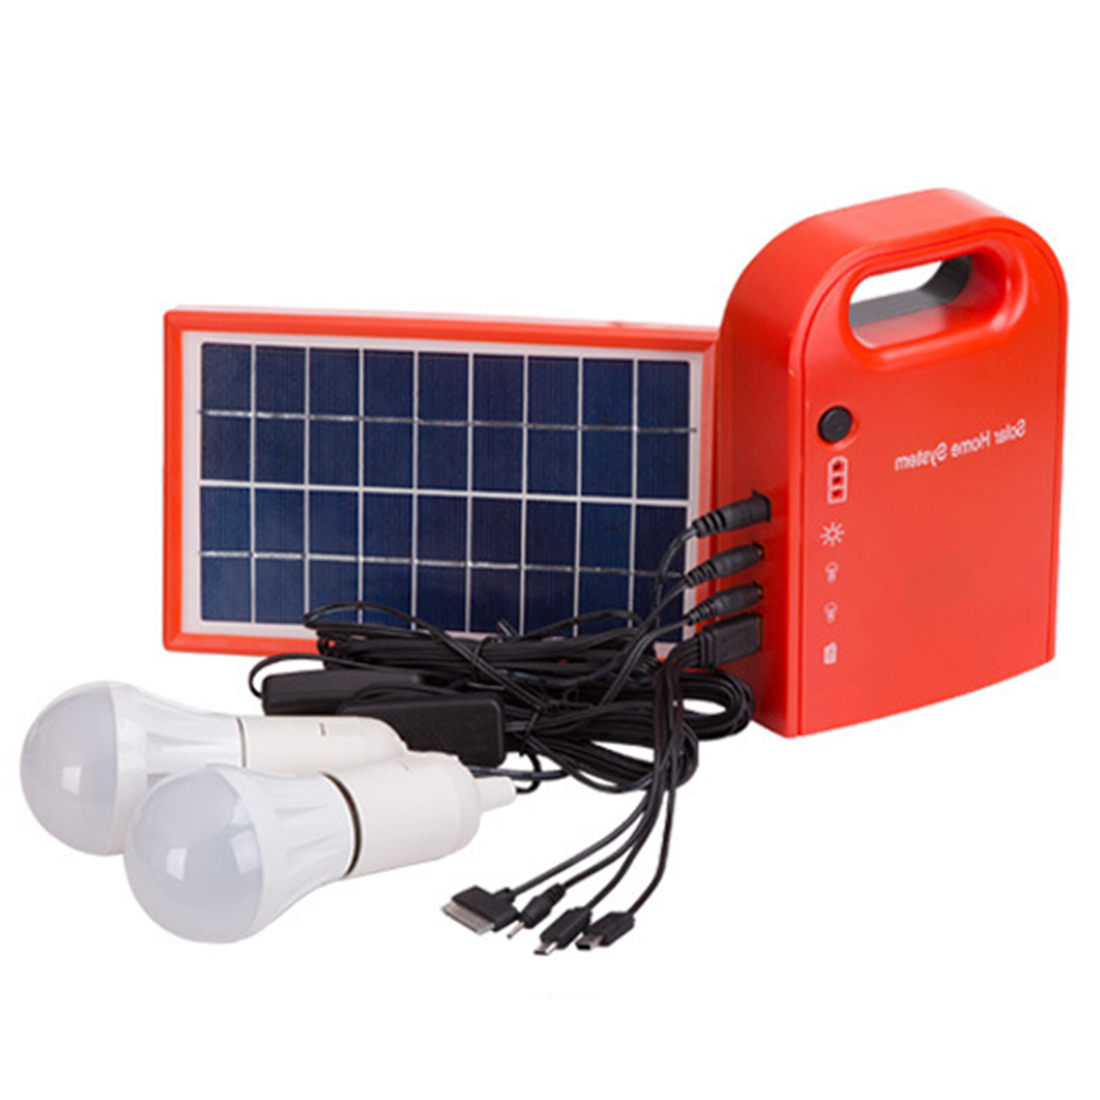 SOPATiO Household Power Photovoltaic Generator Solar Panel System Solar Lamp Battery Charger Cable Emergency Lighting System case for samsung galaxy tab a 8 0 sm t380 t385 tablet protective cover pu leather taba 8 sm t385 sm t385 sm t380 cover cases